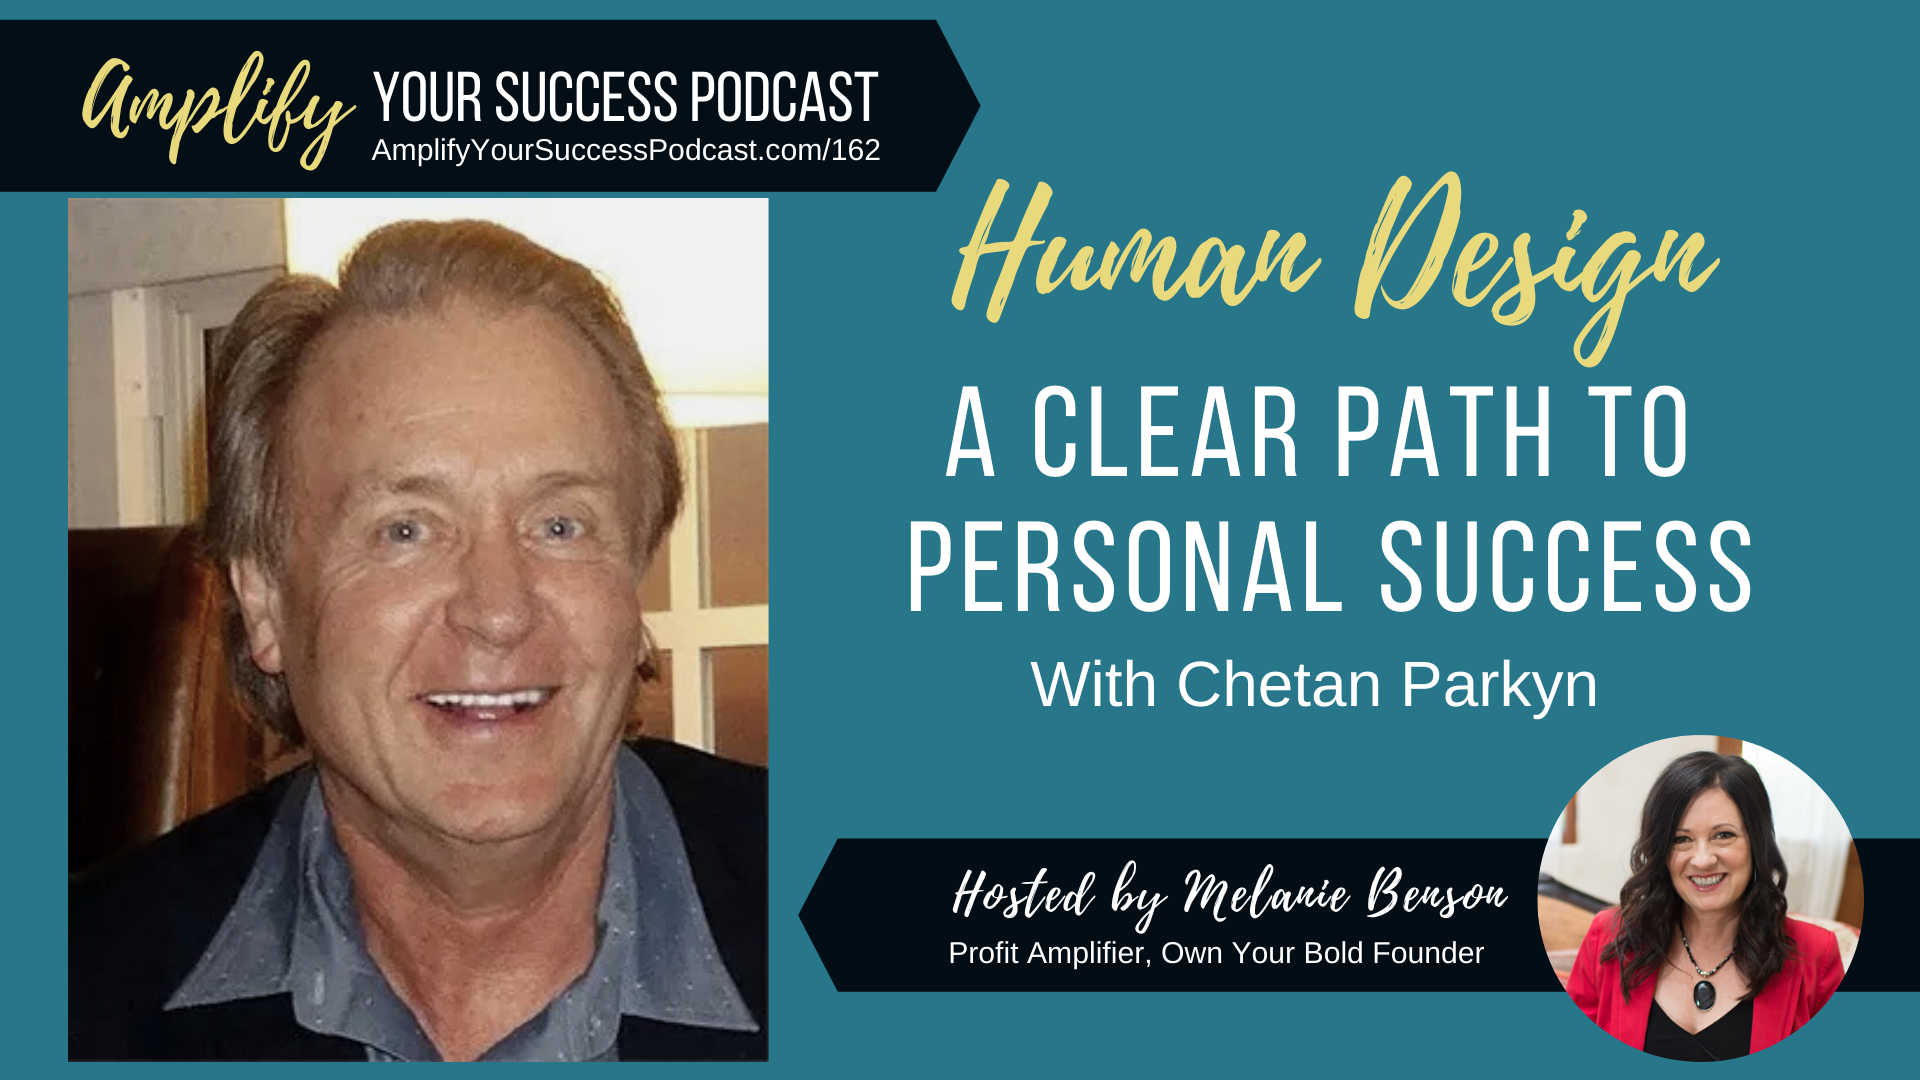 Human Design: A Clear Path to Personal Success with Chetan Parkyn